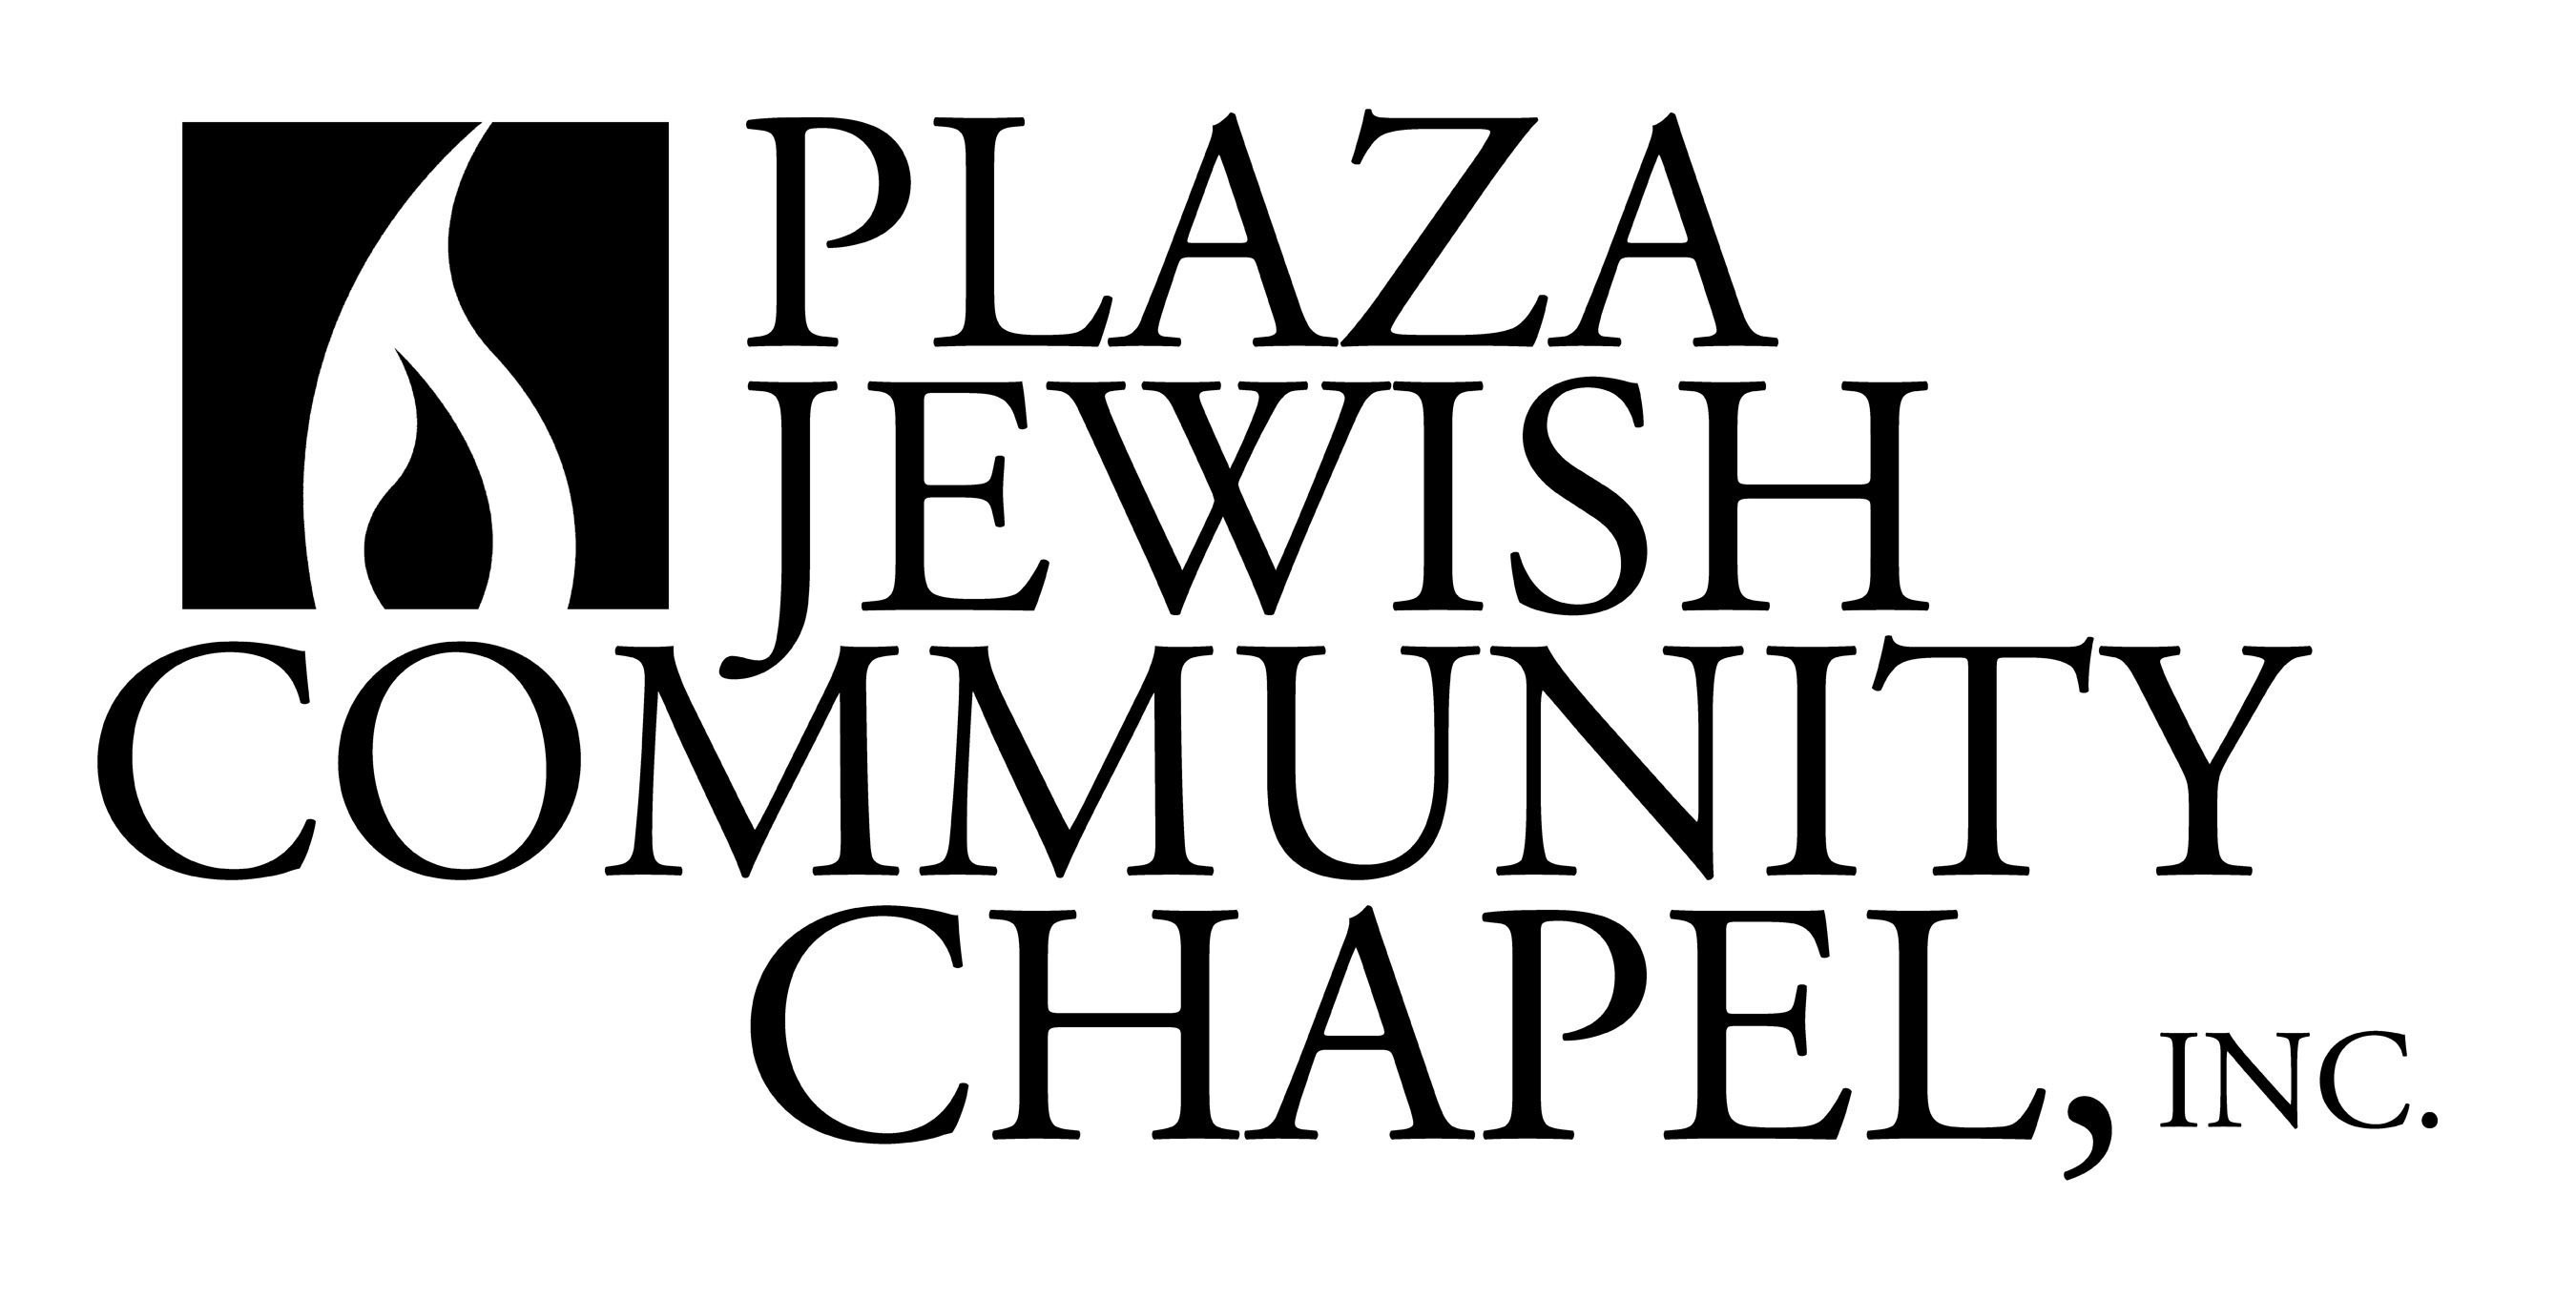 The mission of Plaza Jewish Community Chapel is to ensure that every member of the Jewish Community receives a dignified and respectful Jewish funeral; to lower the high cost of funerals by eliminating the profit motive and commercialism so often associated with the funeral industry; and to provide appropriate connections to Jewish communal resources that the bereaved may need to cope with emotional or practical problems.